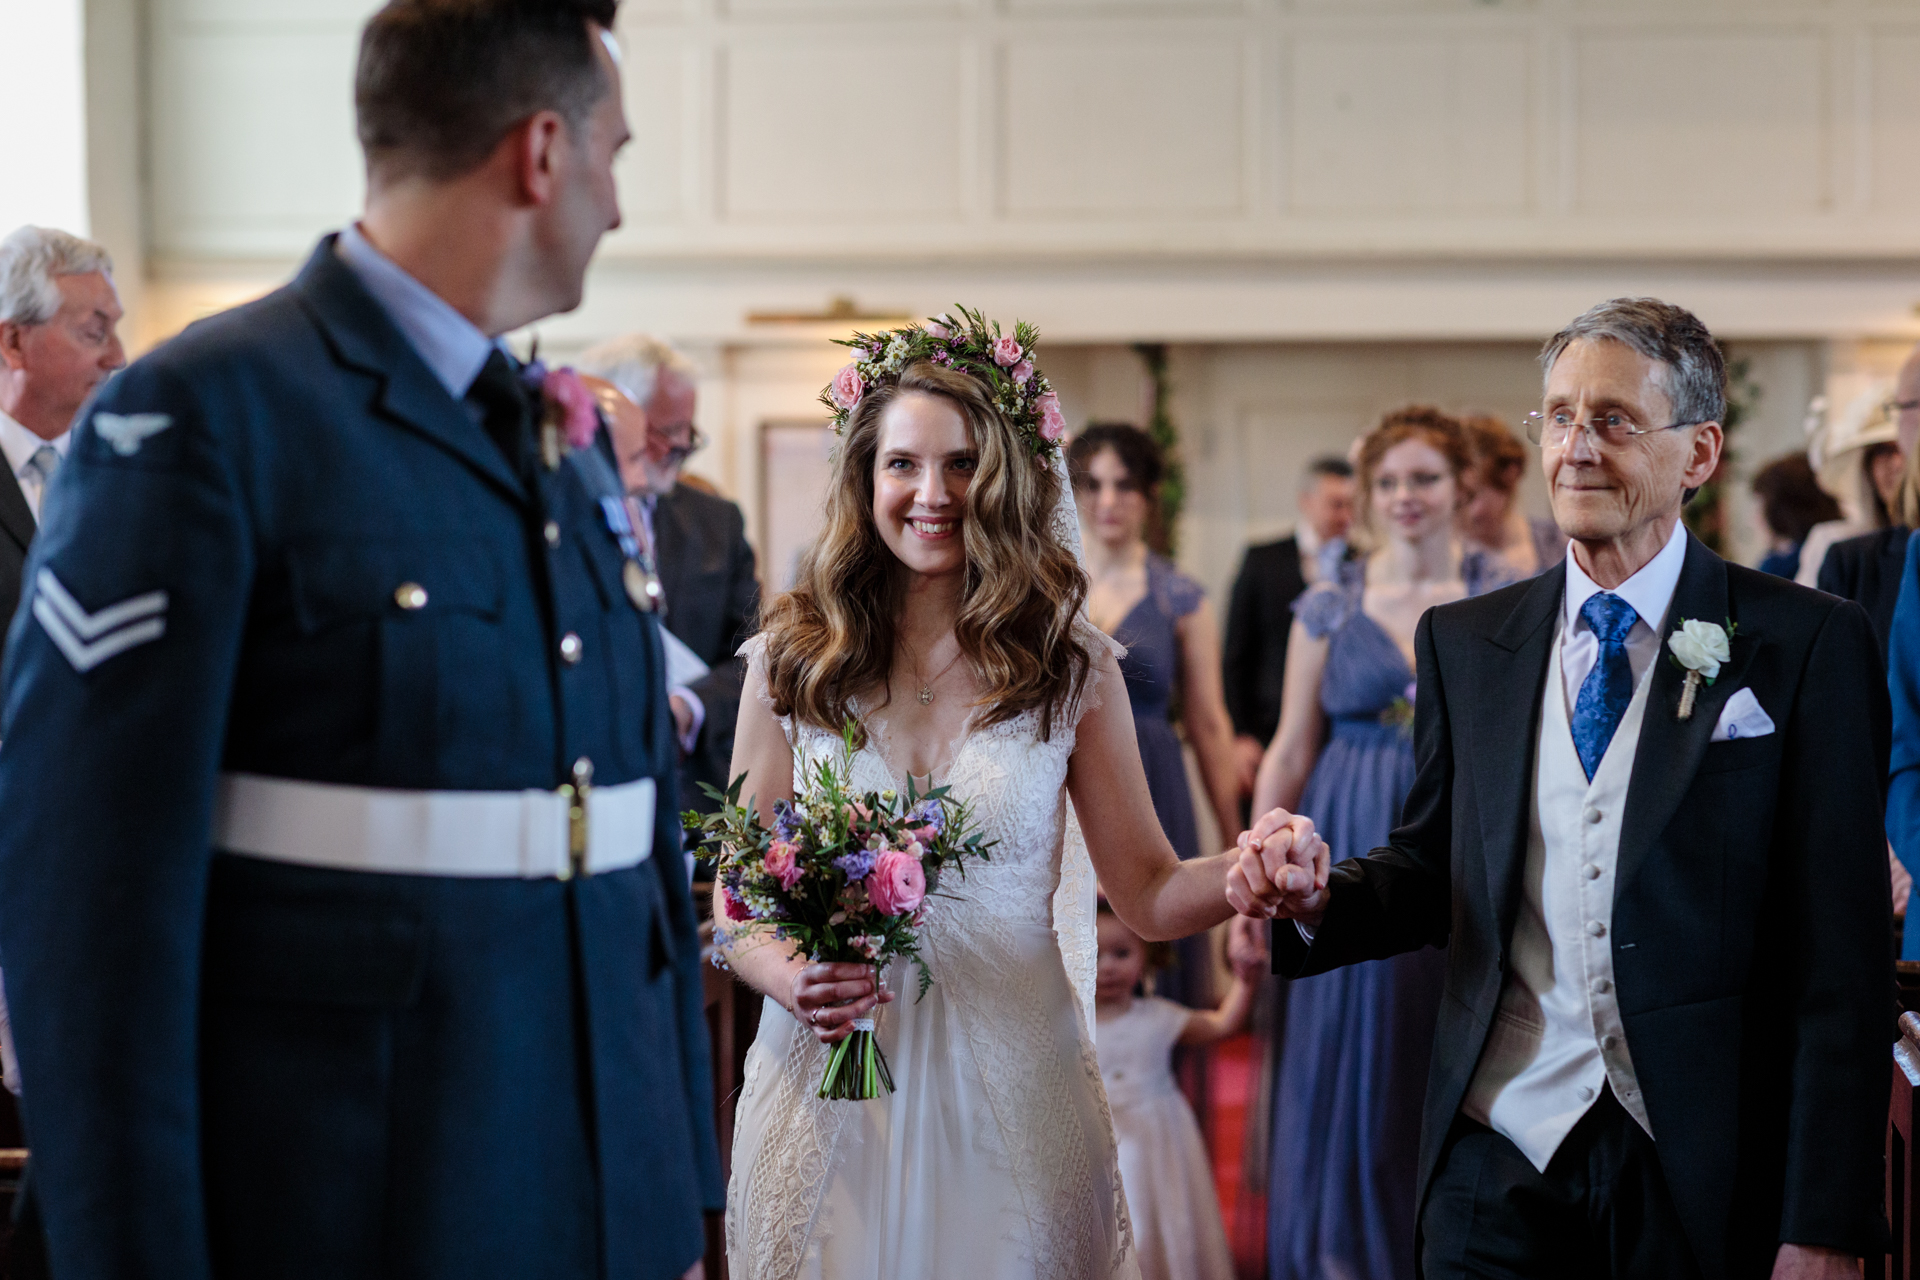 Catherine Hill, of Kent, is a wedding photographer for Petham Church, Petham, Kent, UK